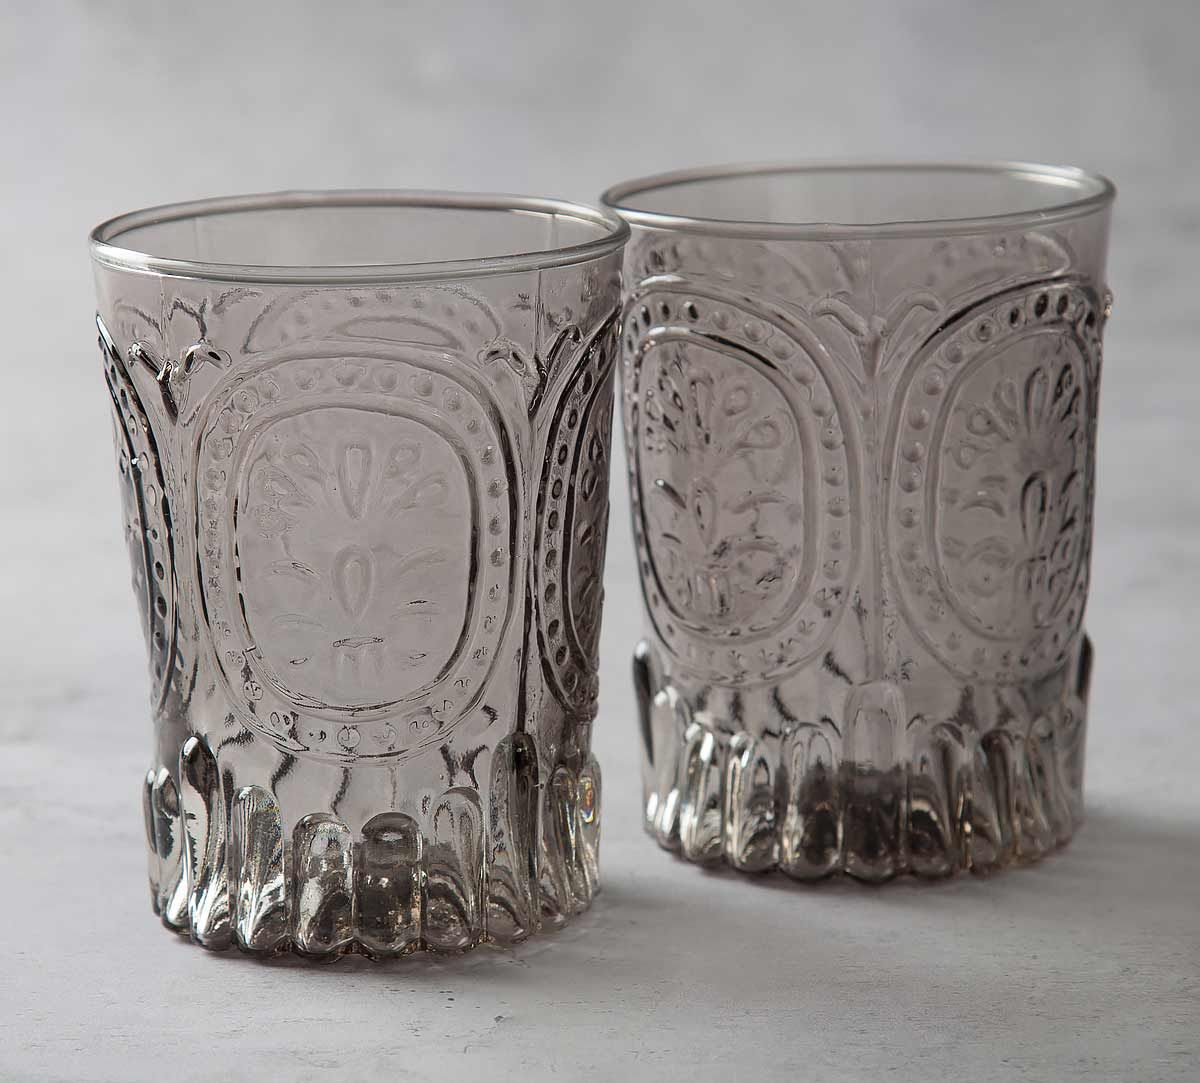 India Circus Vintage Glass Tumbler (Set of 2)